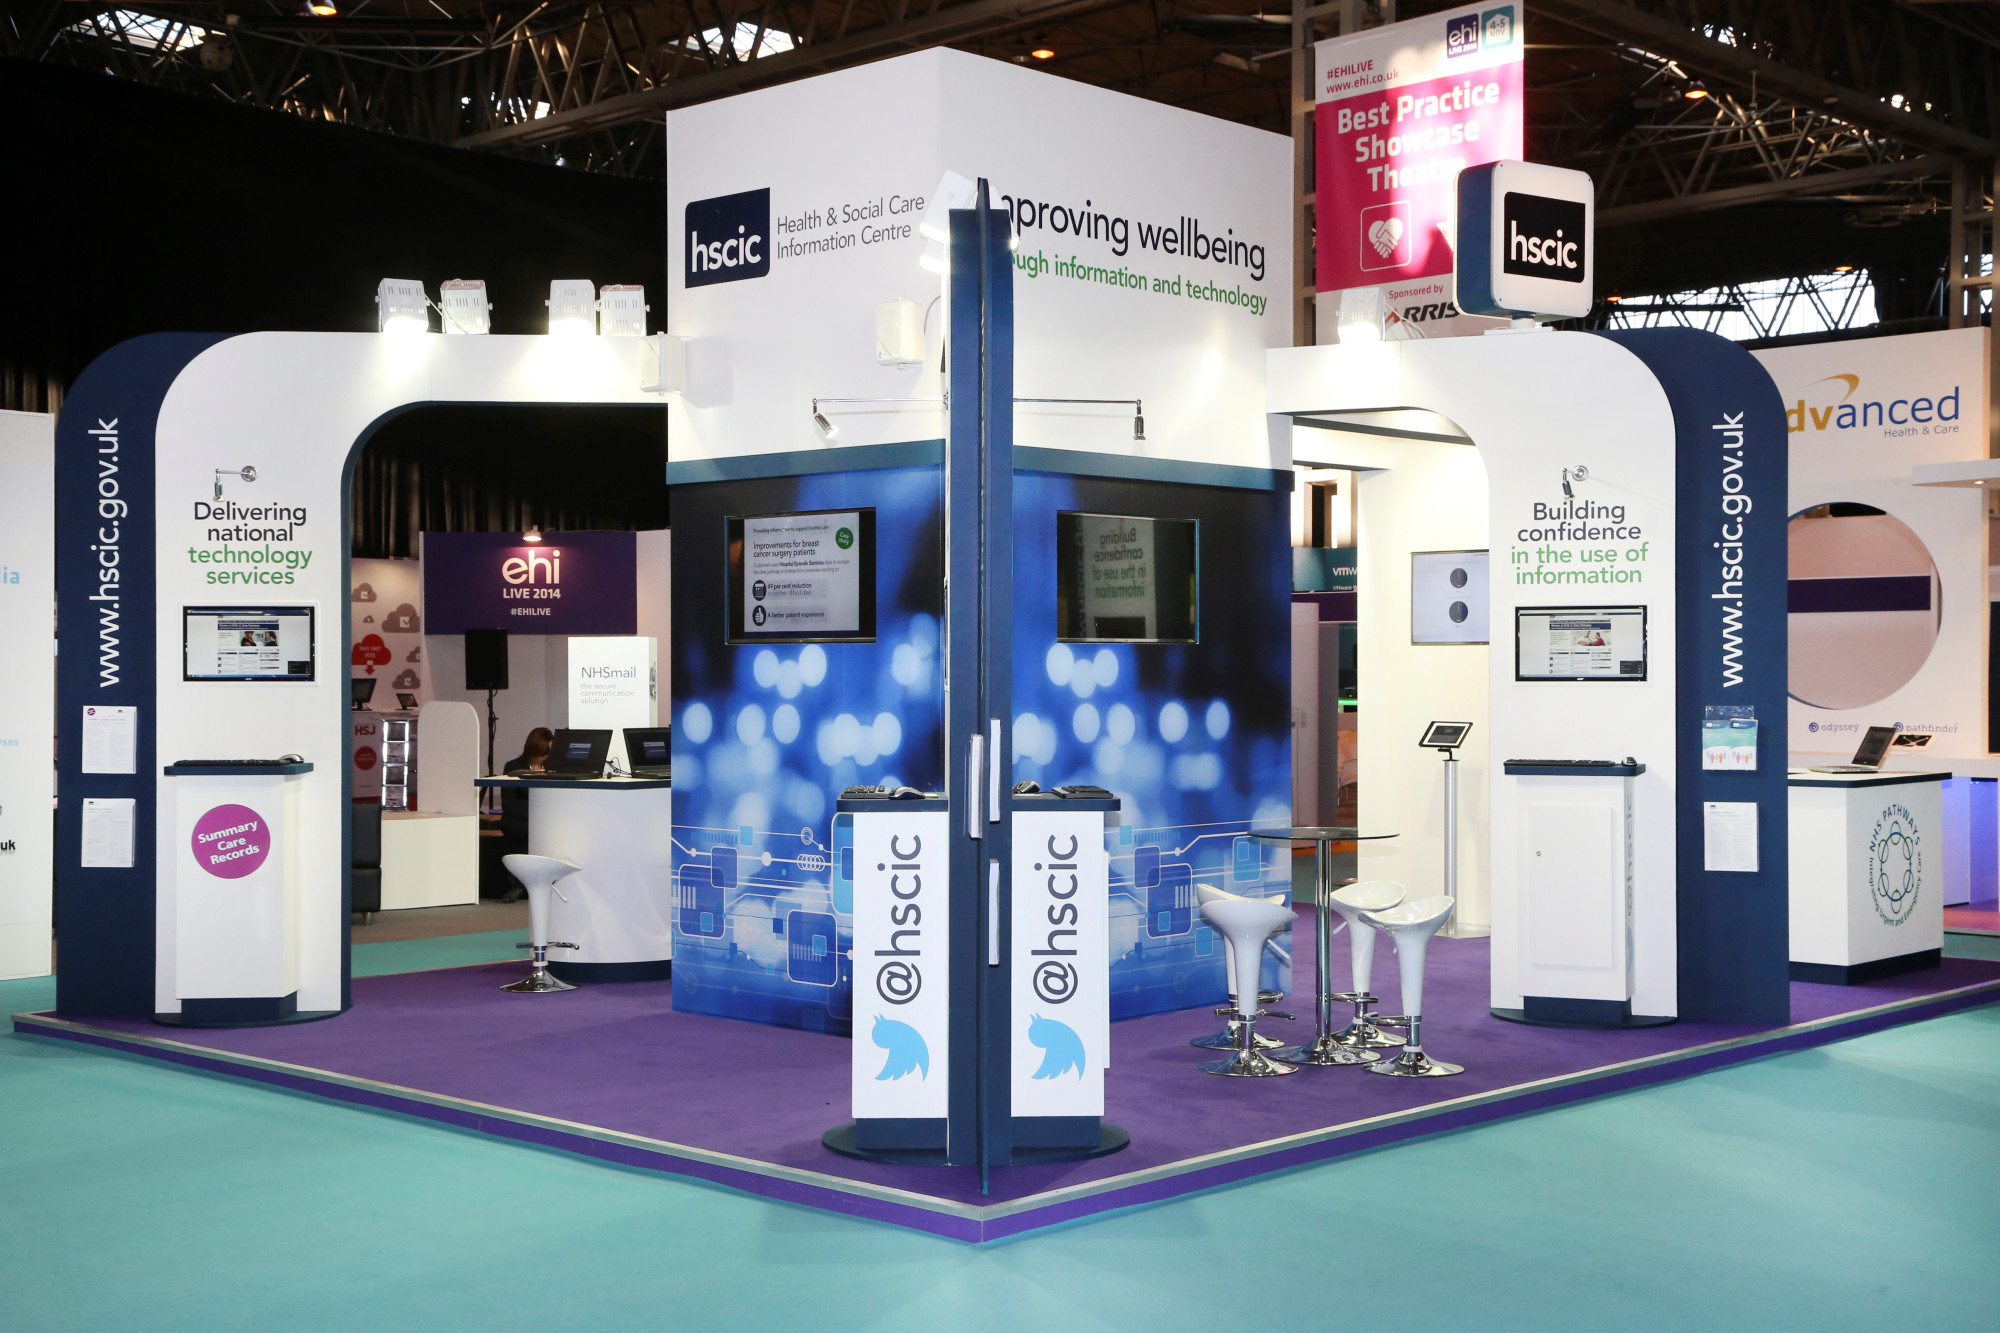 Exhibition Stand Information : Bespoke exhibition stands ⋆ kj exhibition & display